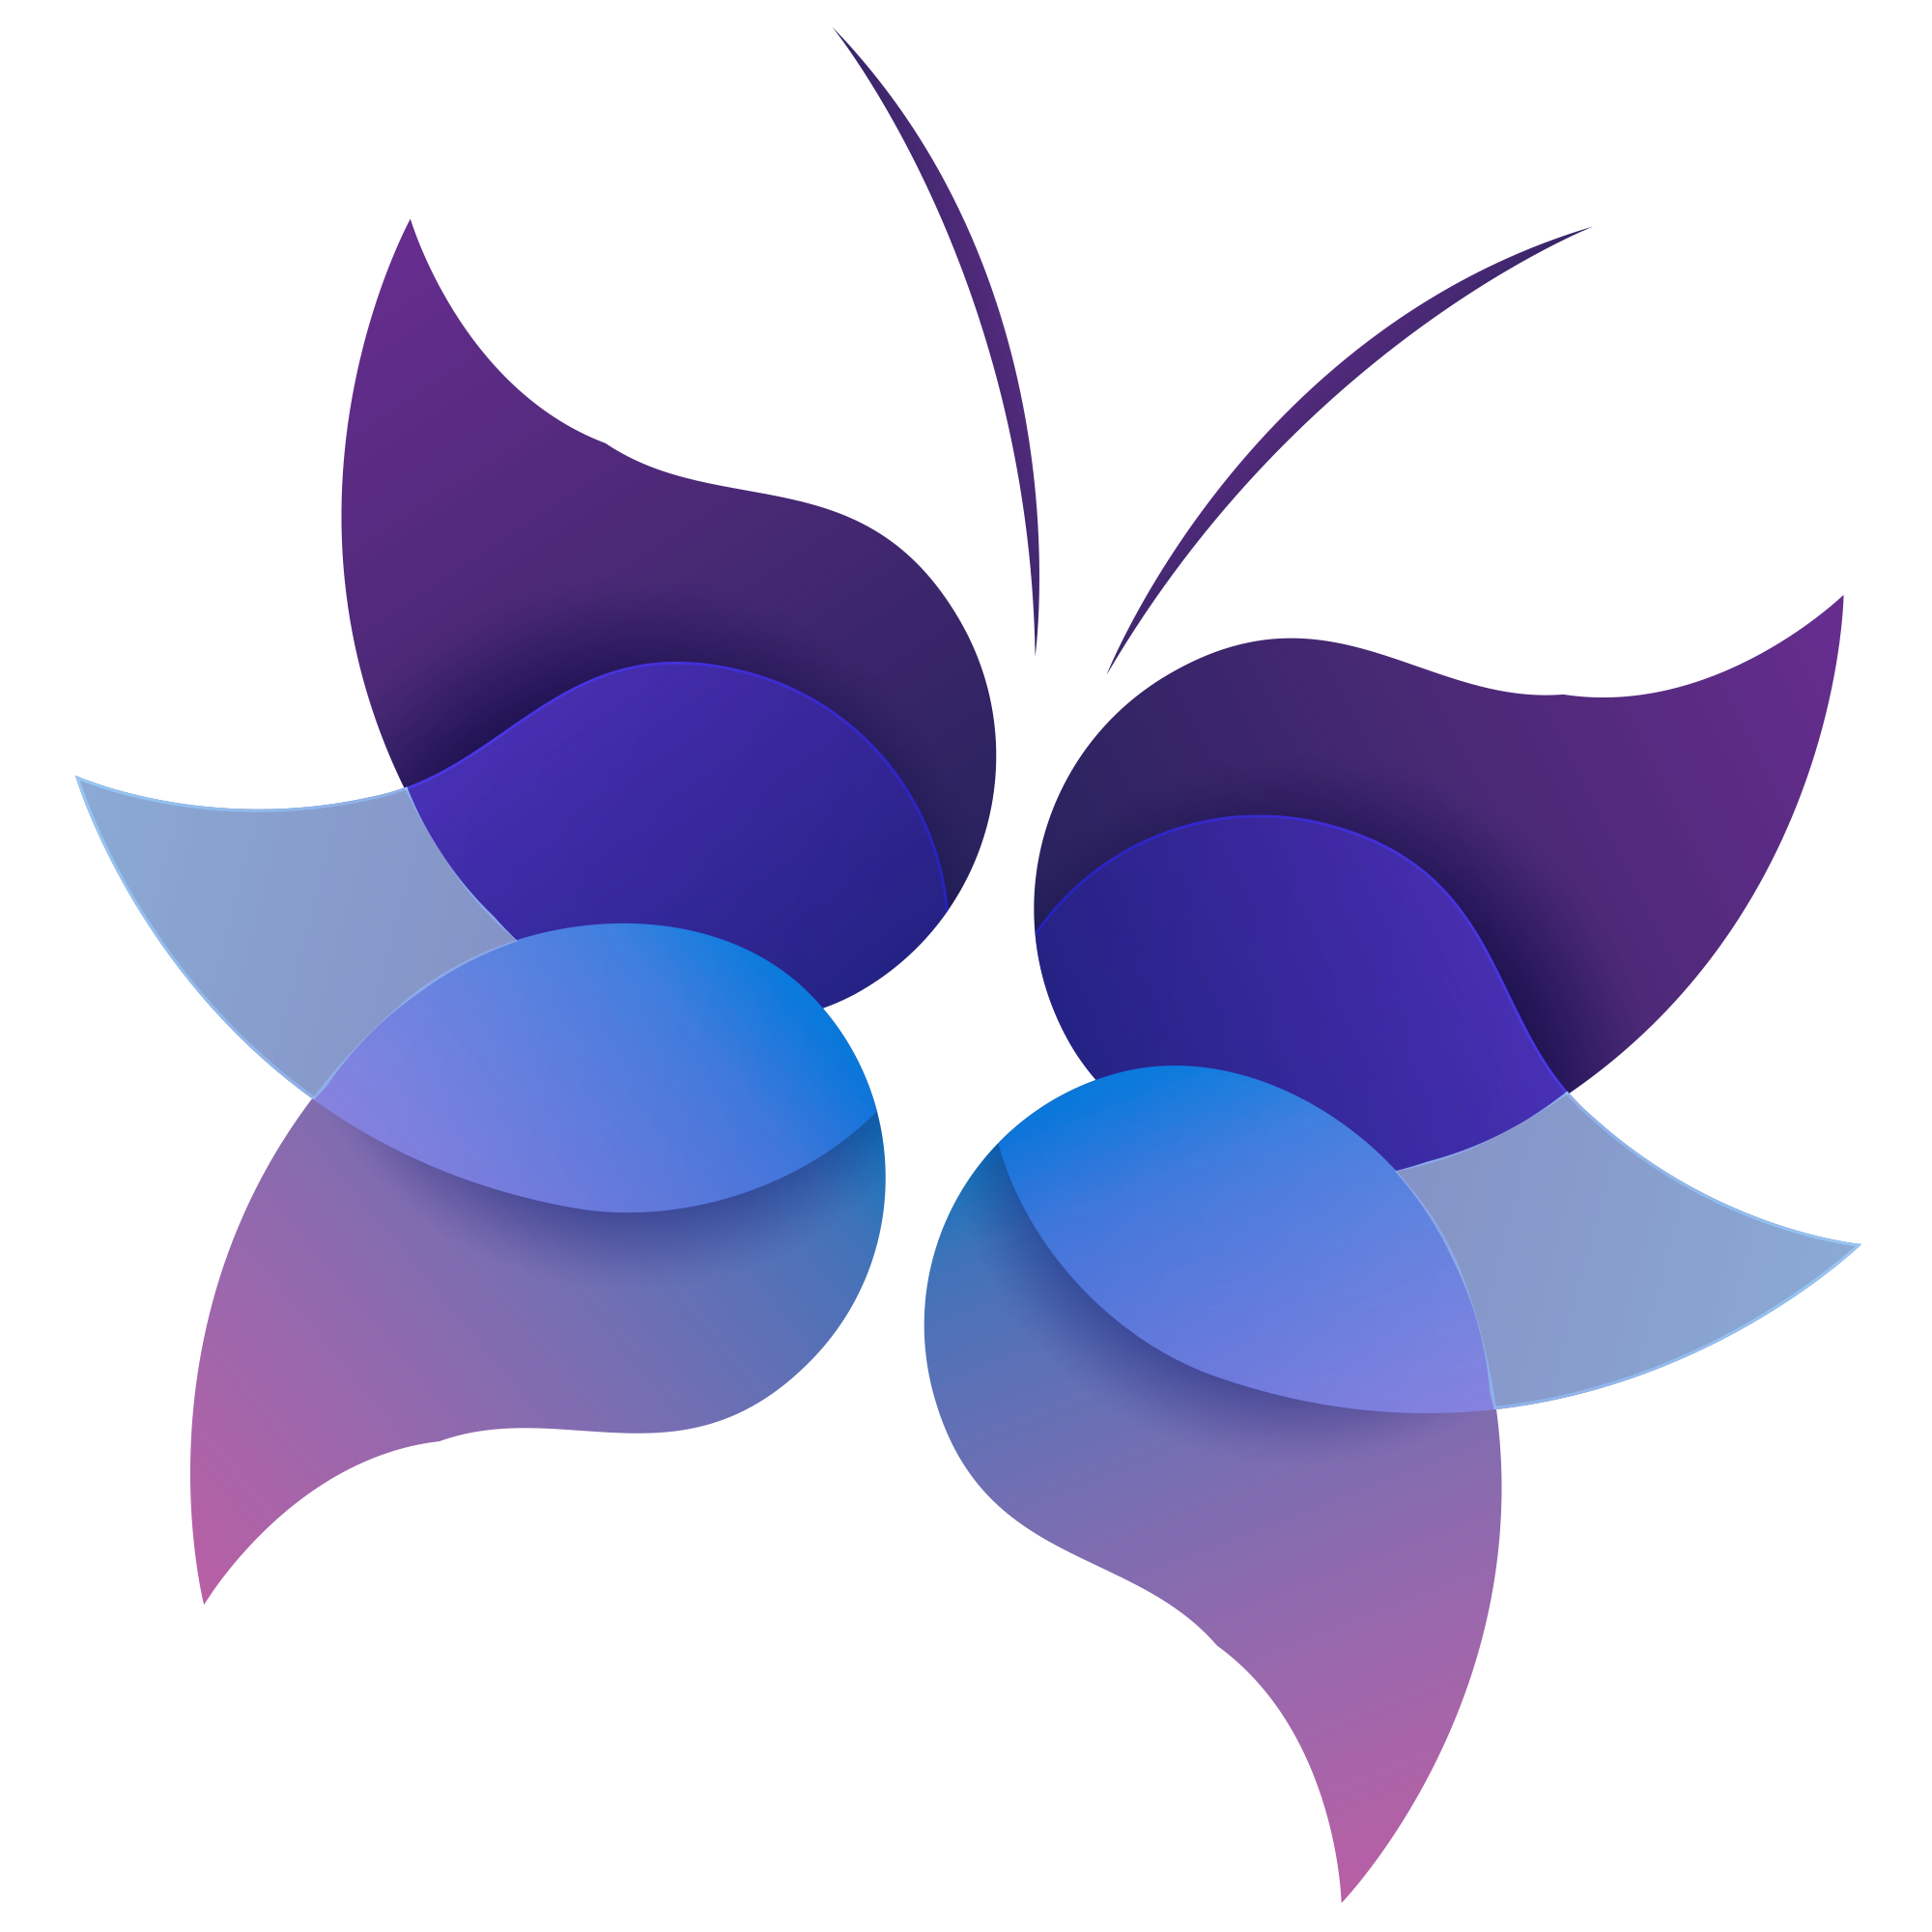 Emerge Butterfly logo for General Conference 2016